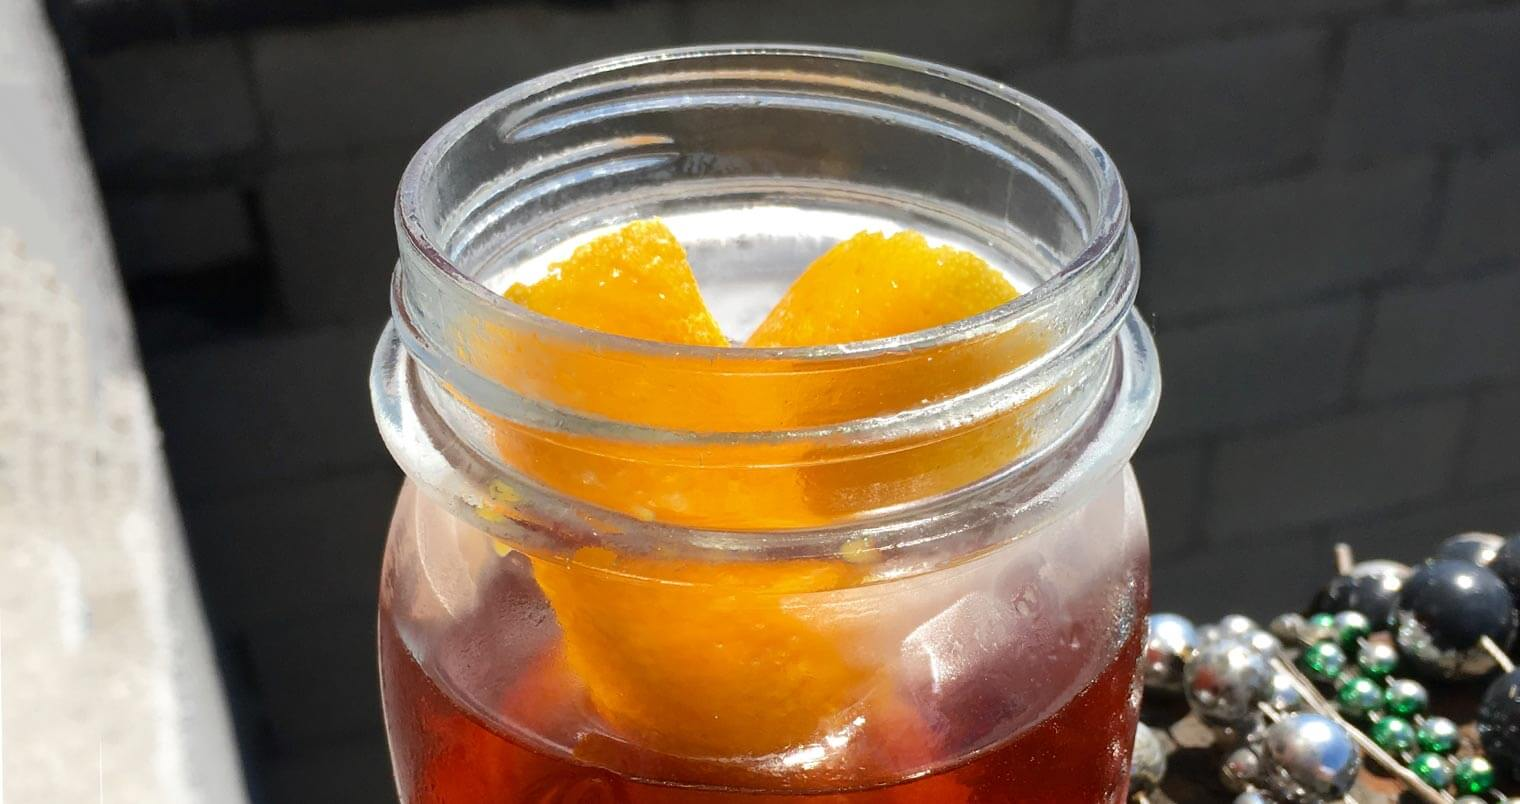 CHILLED Drink of the Week: Spirit of Frontage Road, featured image